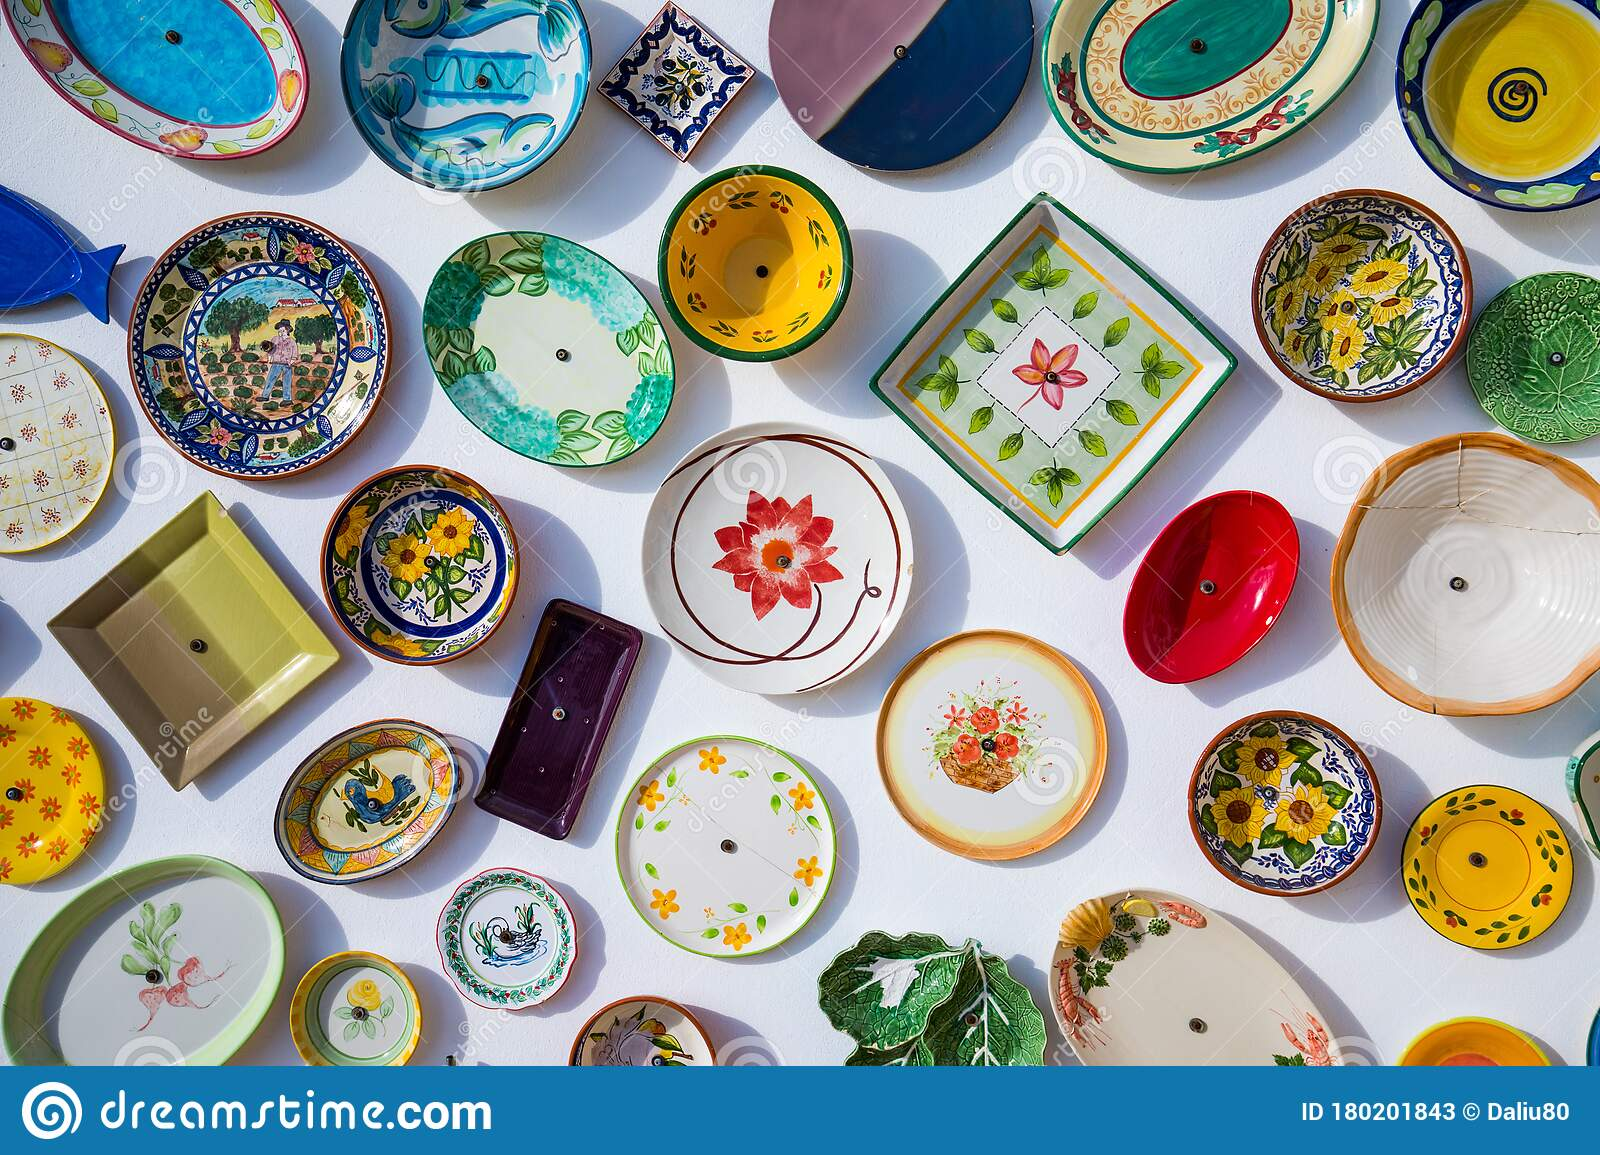 Collection Of Colorful Portuguese Ceramic Pottery, Local Craft Products  From Portugal. Ceramic Plates Display In Portugal. Editorial Stock Photo -  Image of pottery, portugal: 180201843